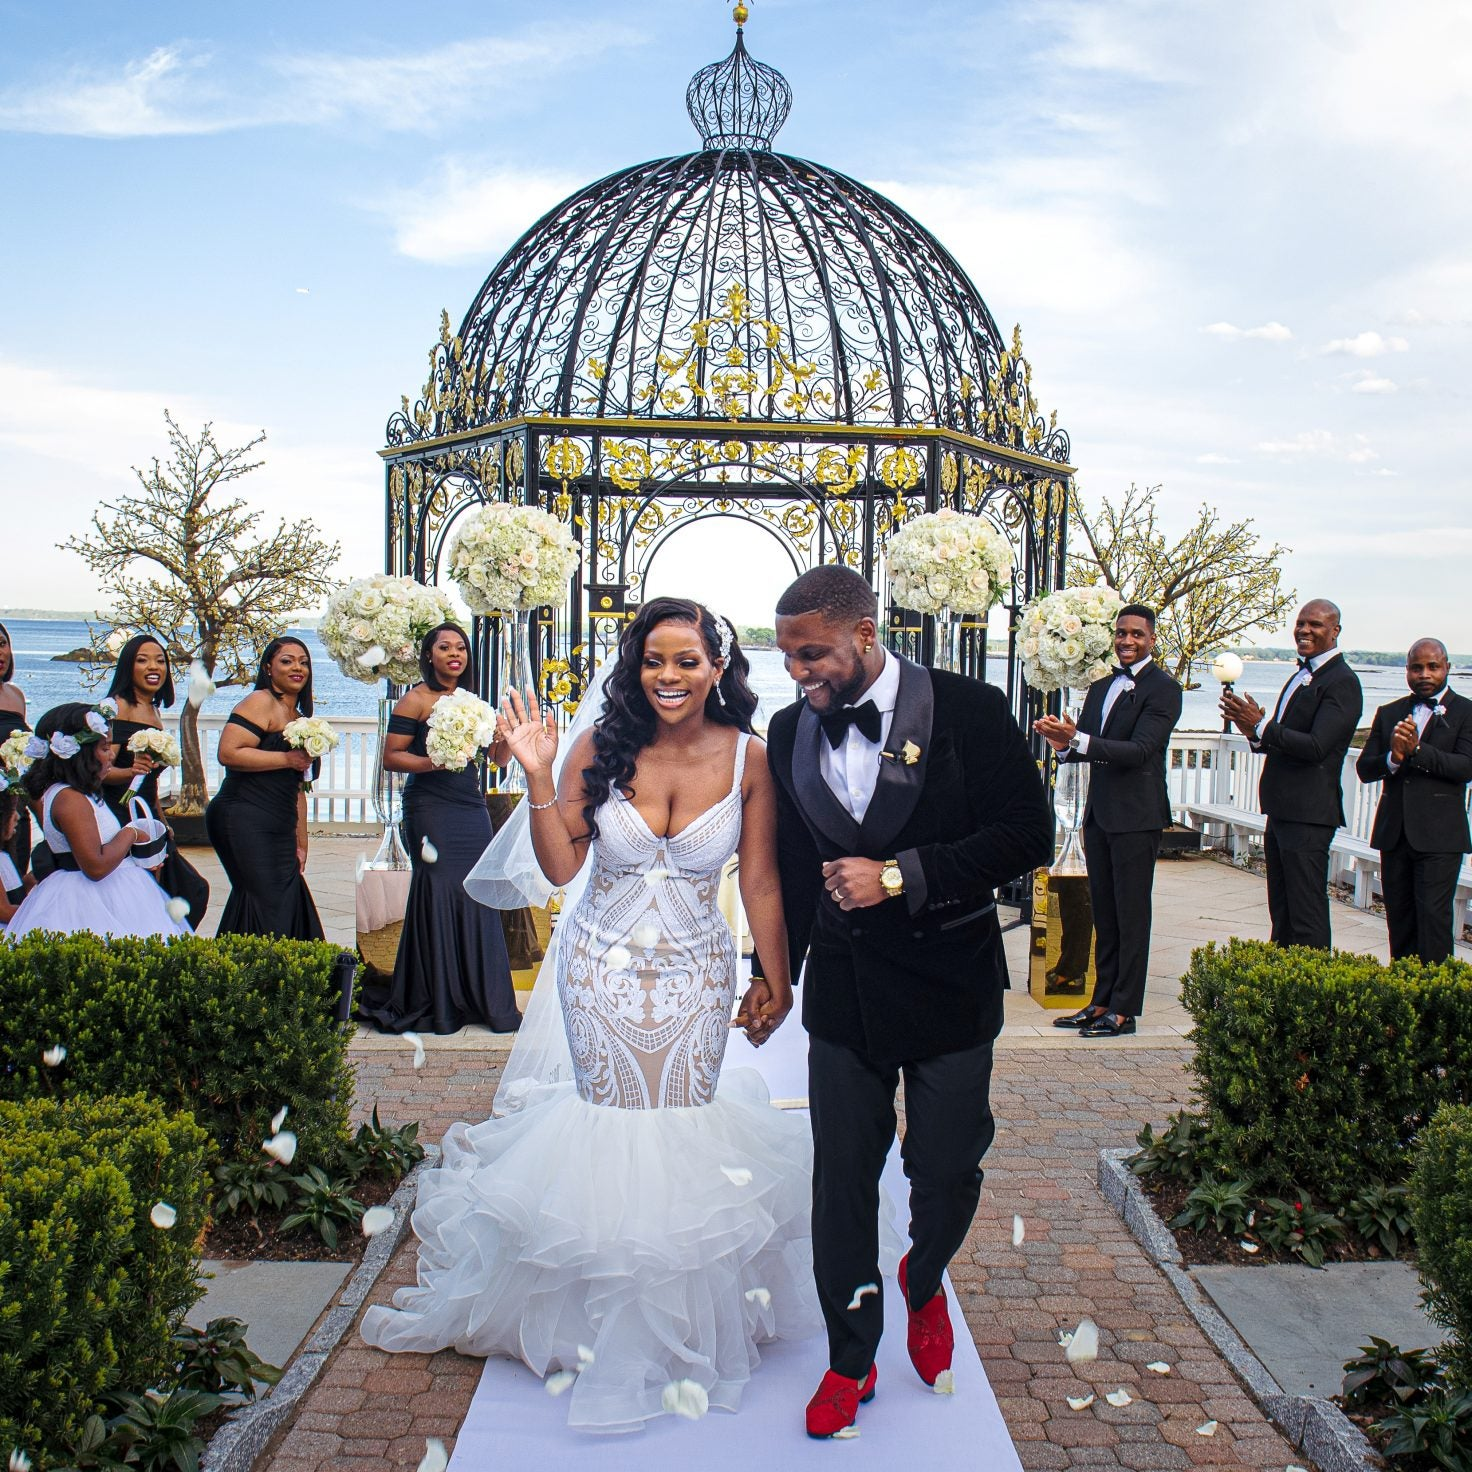 Bridal Bliss: Ayesha And Steve's Gold And White Wedding Deserves An Award